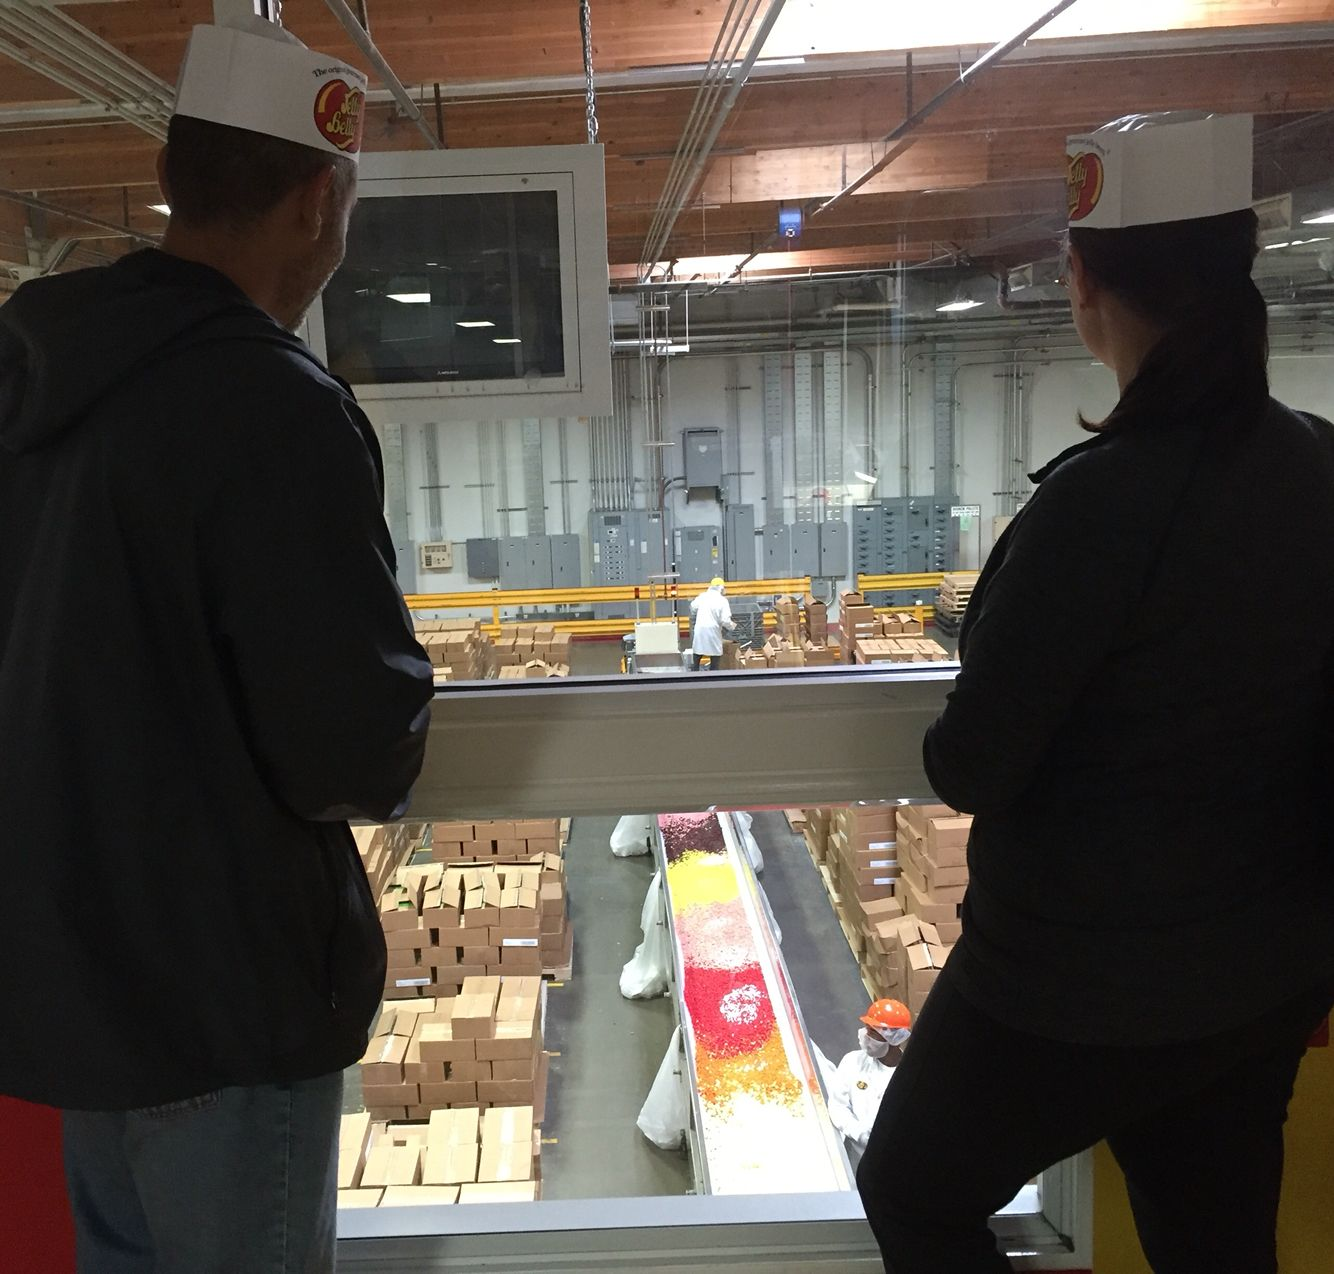 Jelly belly factory tour in fairfield ca 61616with my